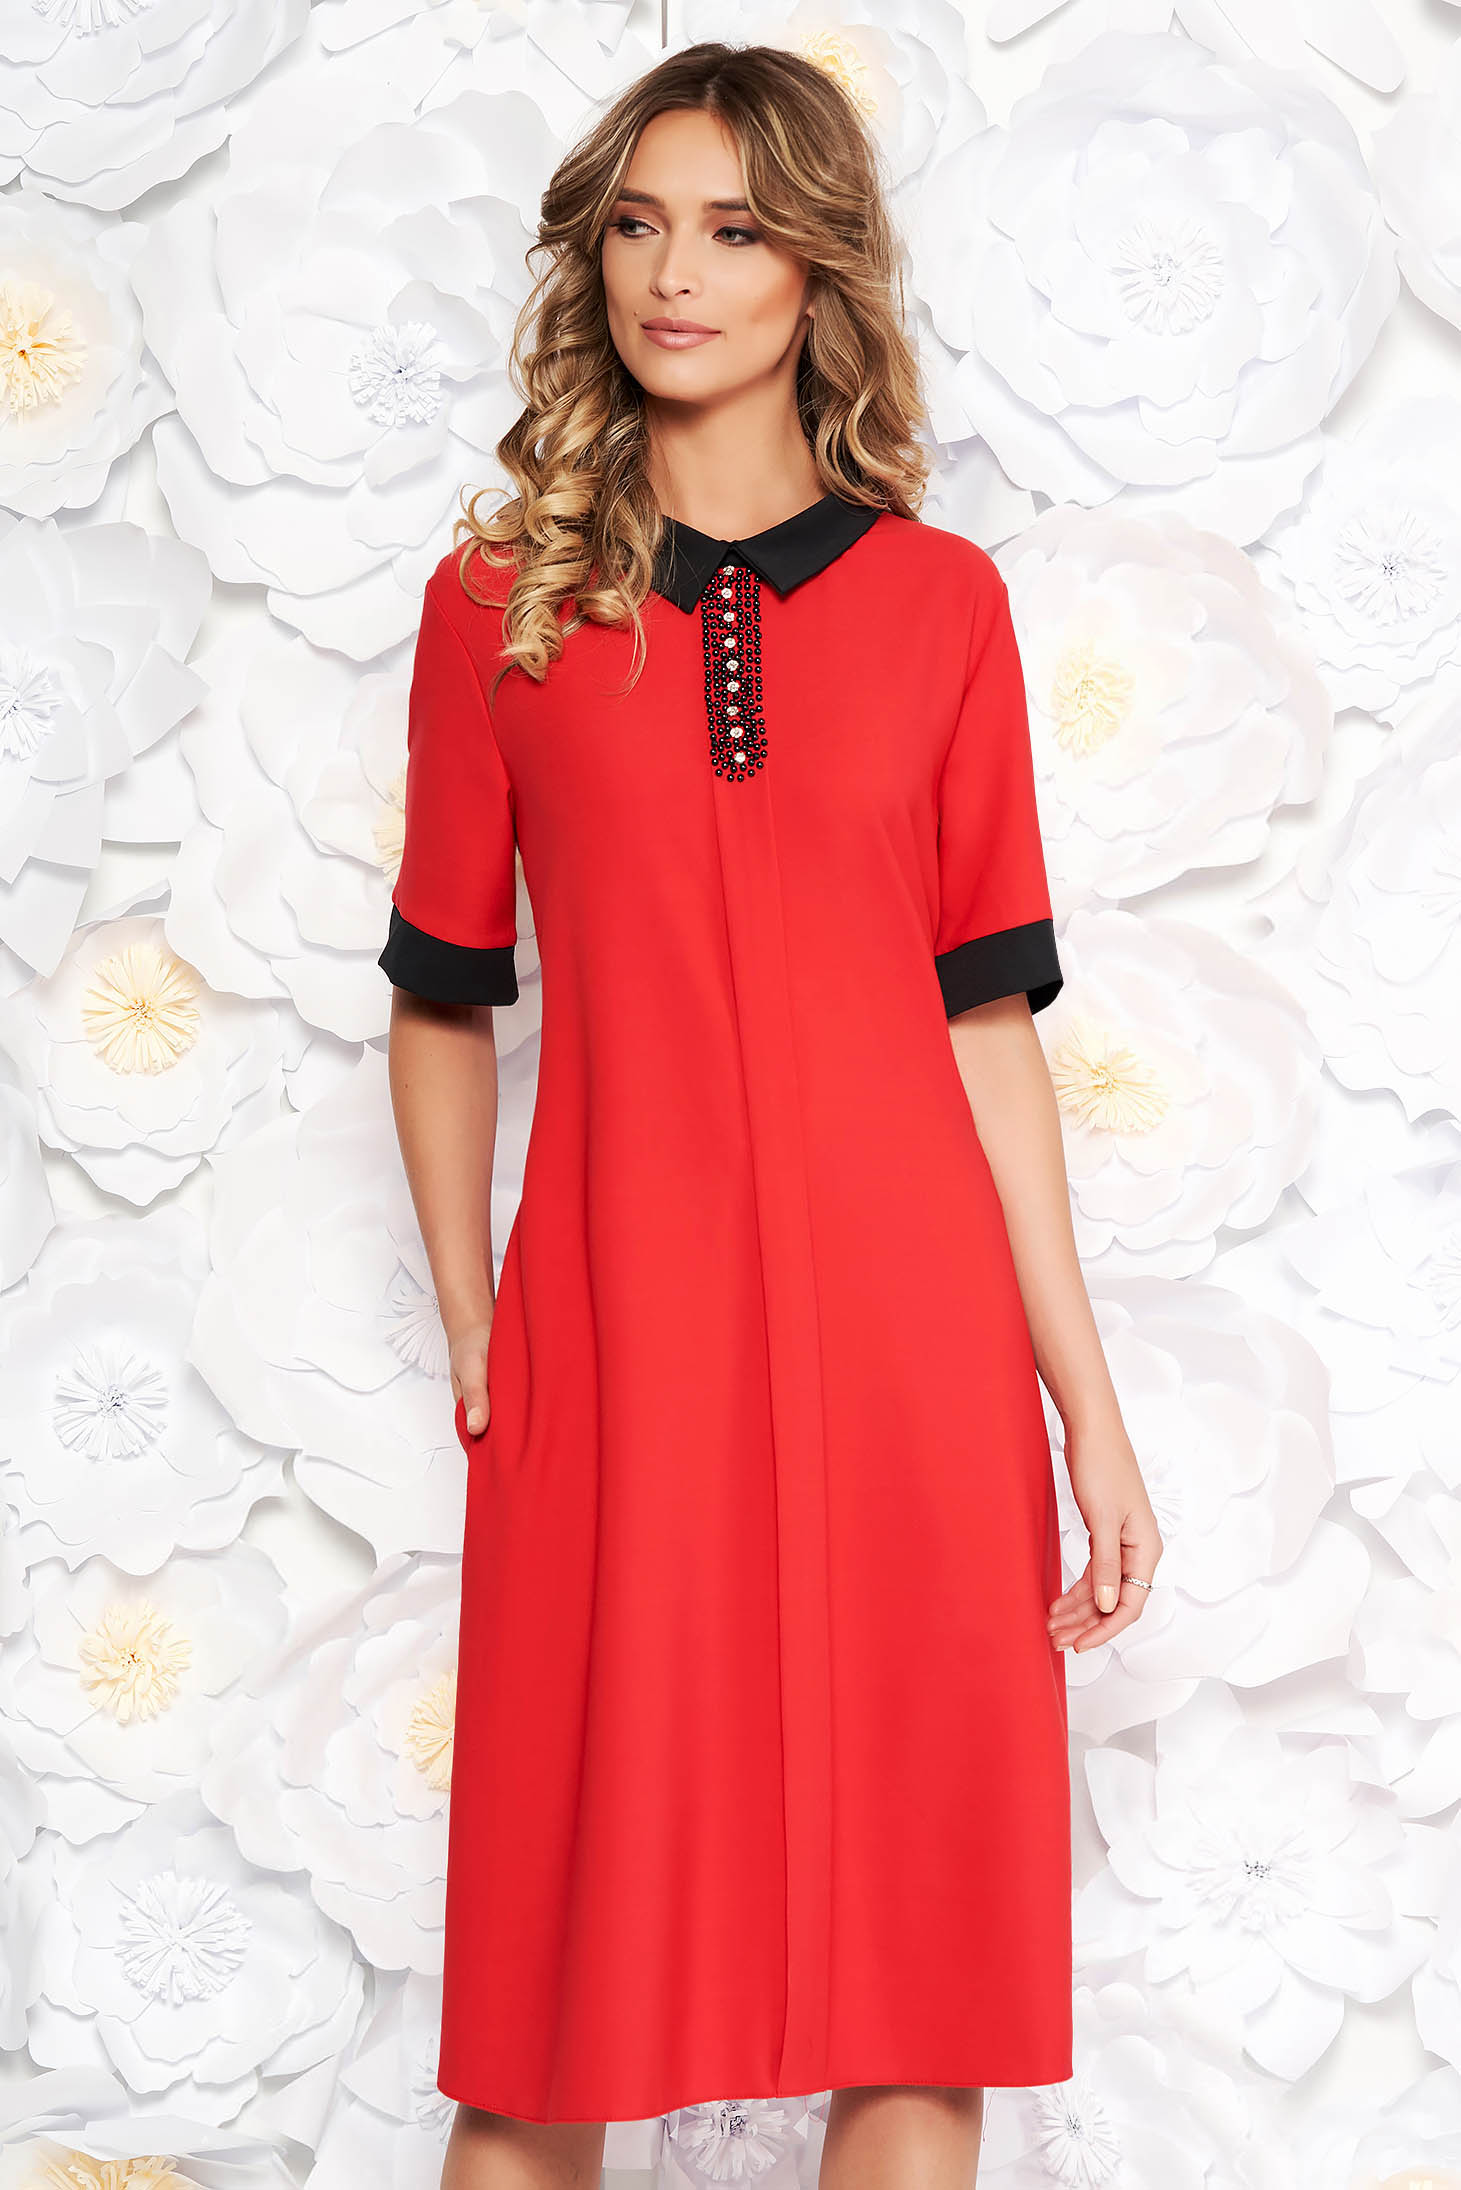 Red elegant midi flared dress soft fabric with pockets with small beads embellished details